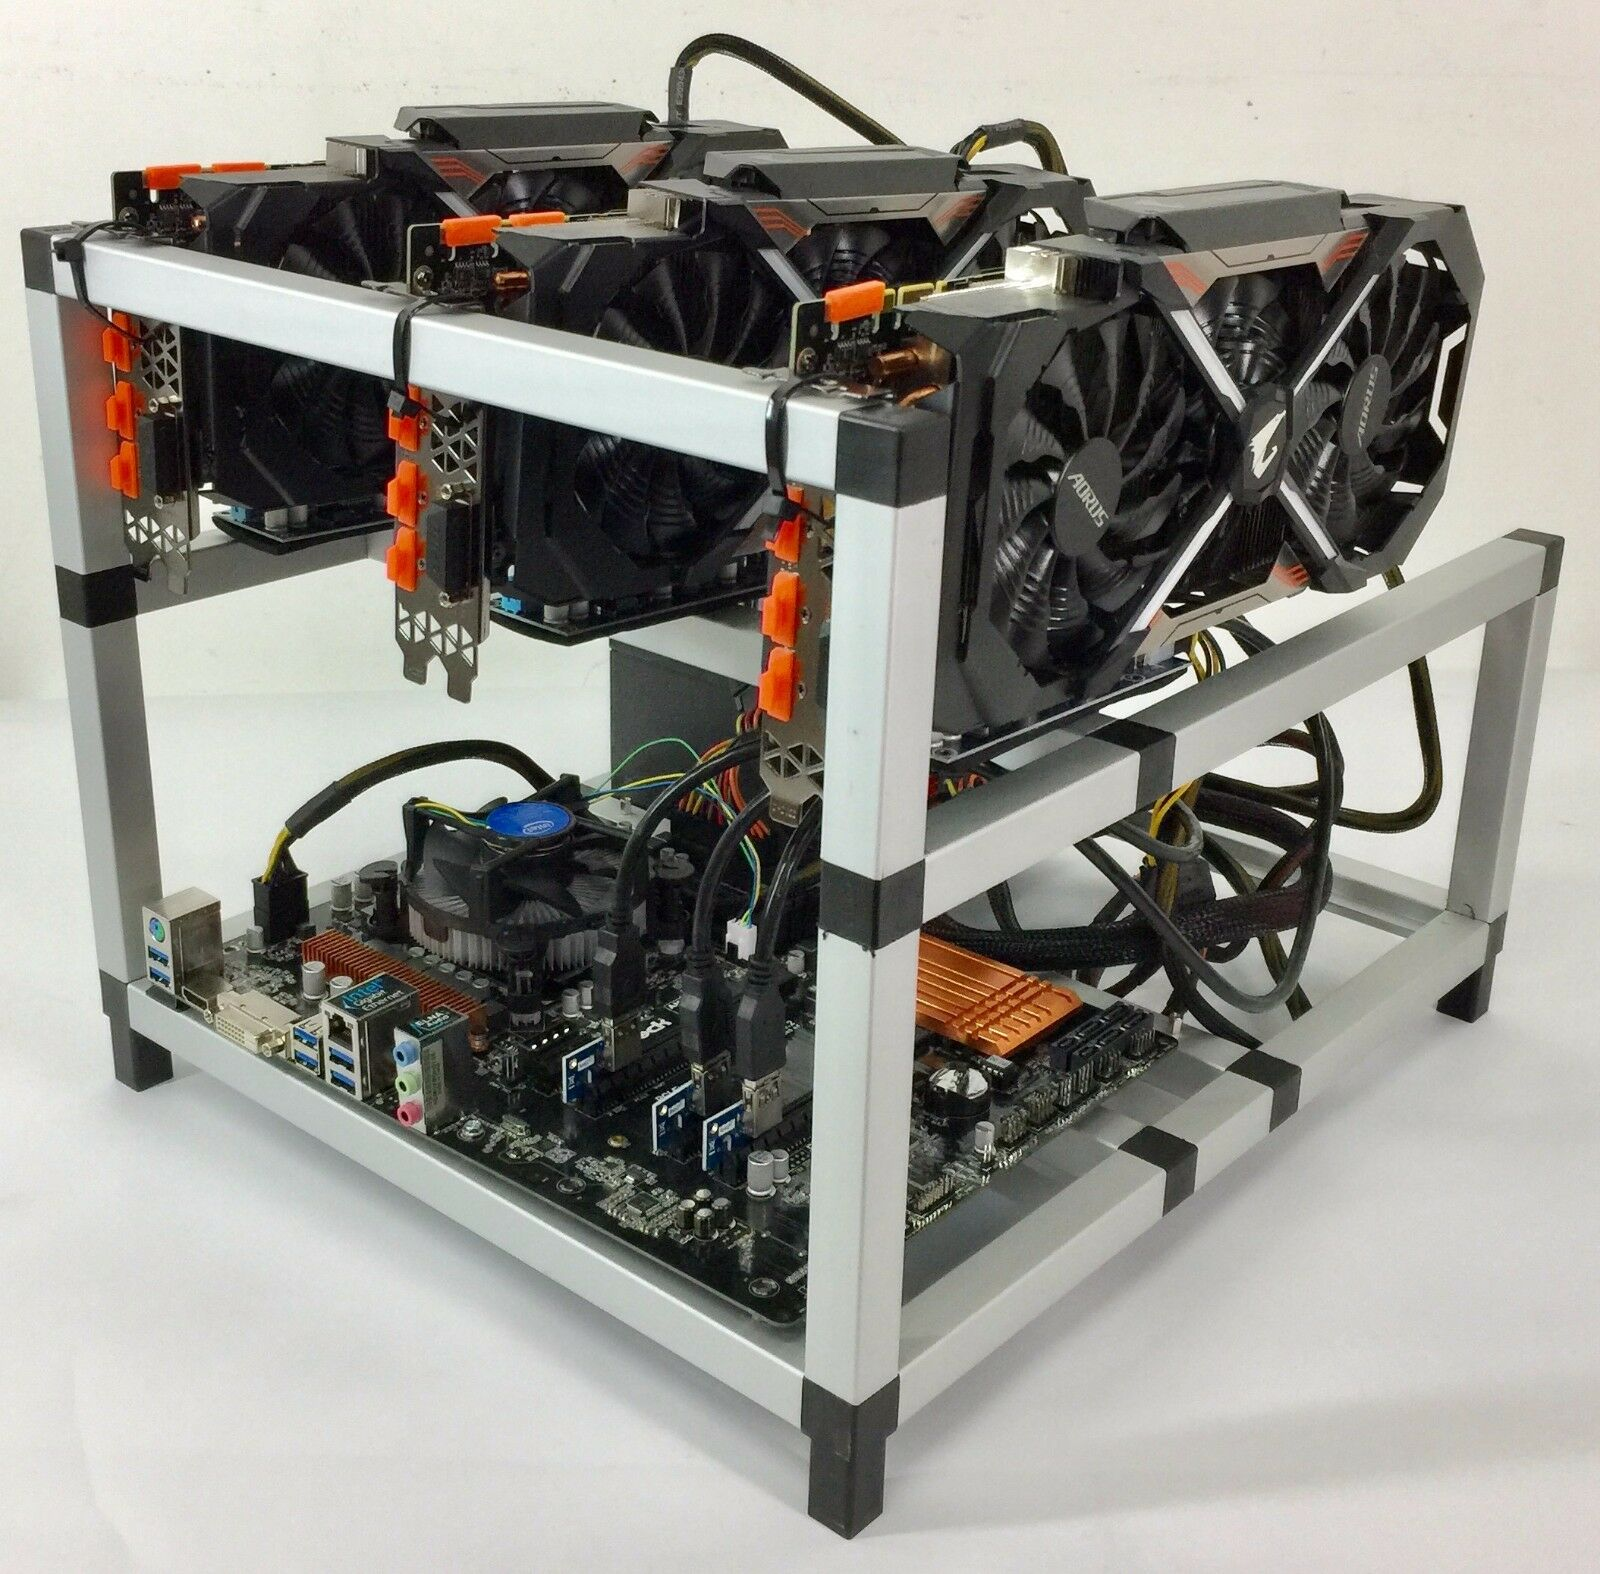 Details about Crypto Coin GPU Mining Rig Raven Grin Beam Ethereum ETH  Bitcoin 3x GTX 1080Ti